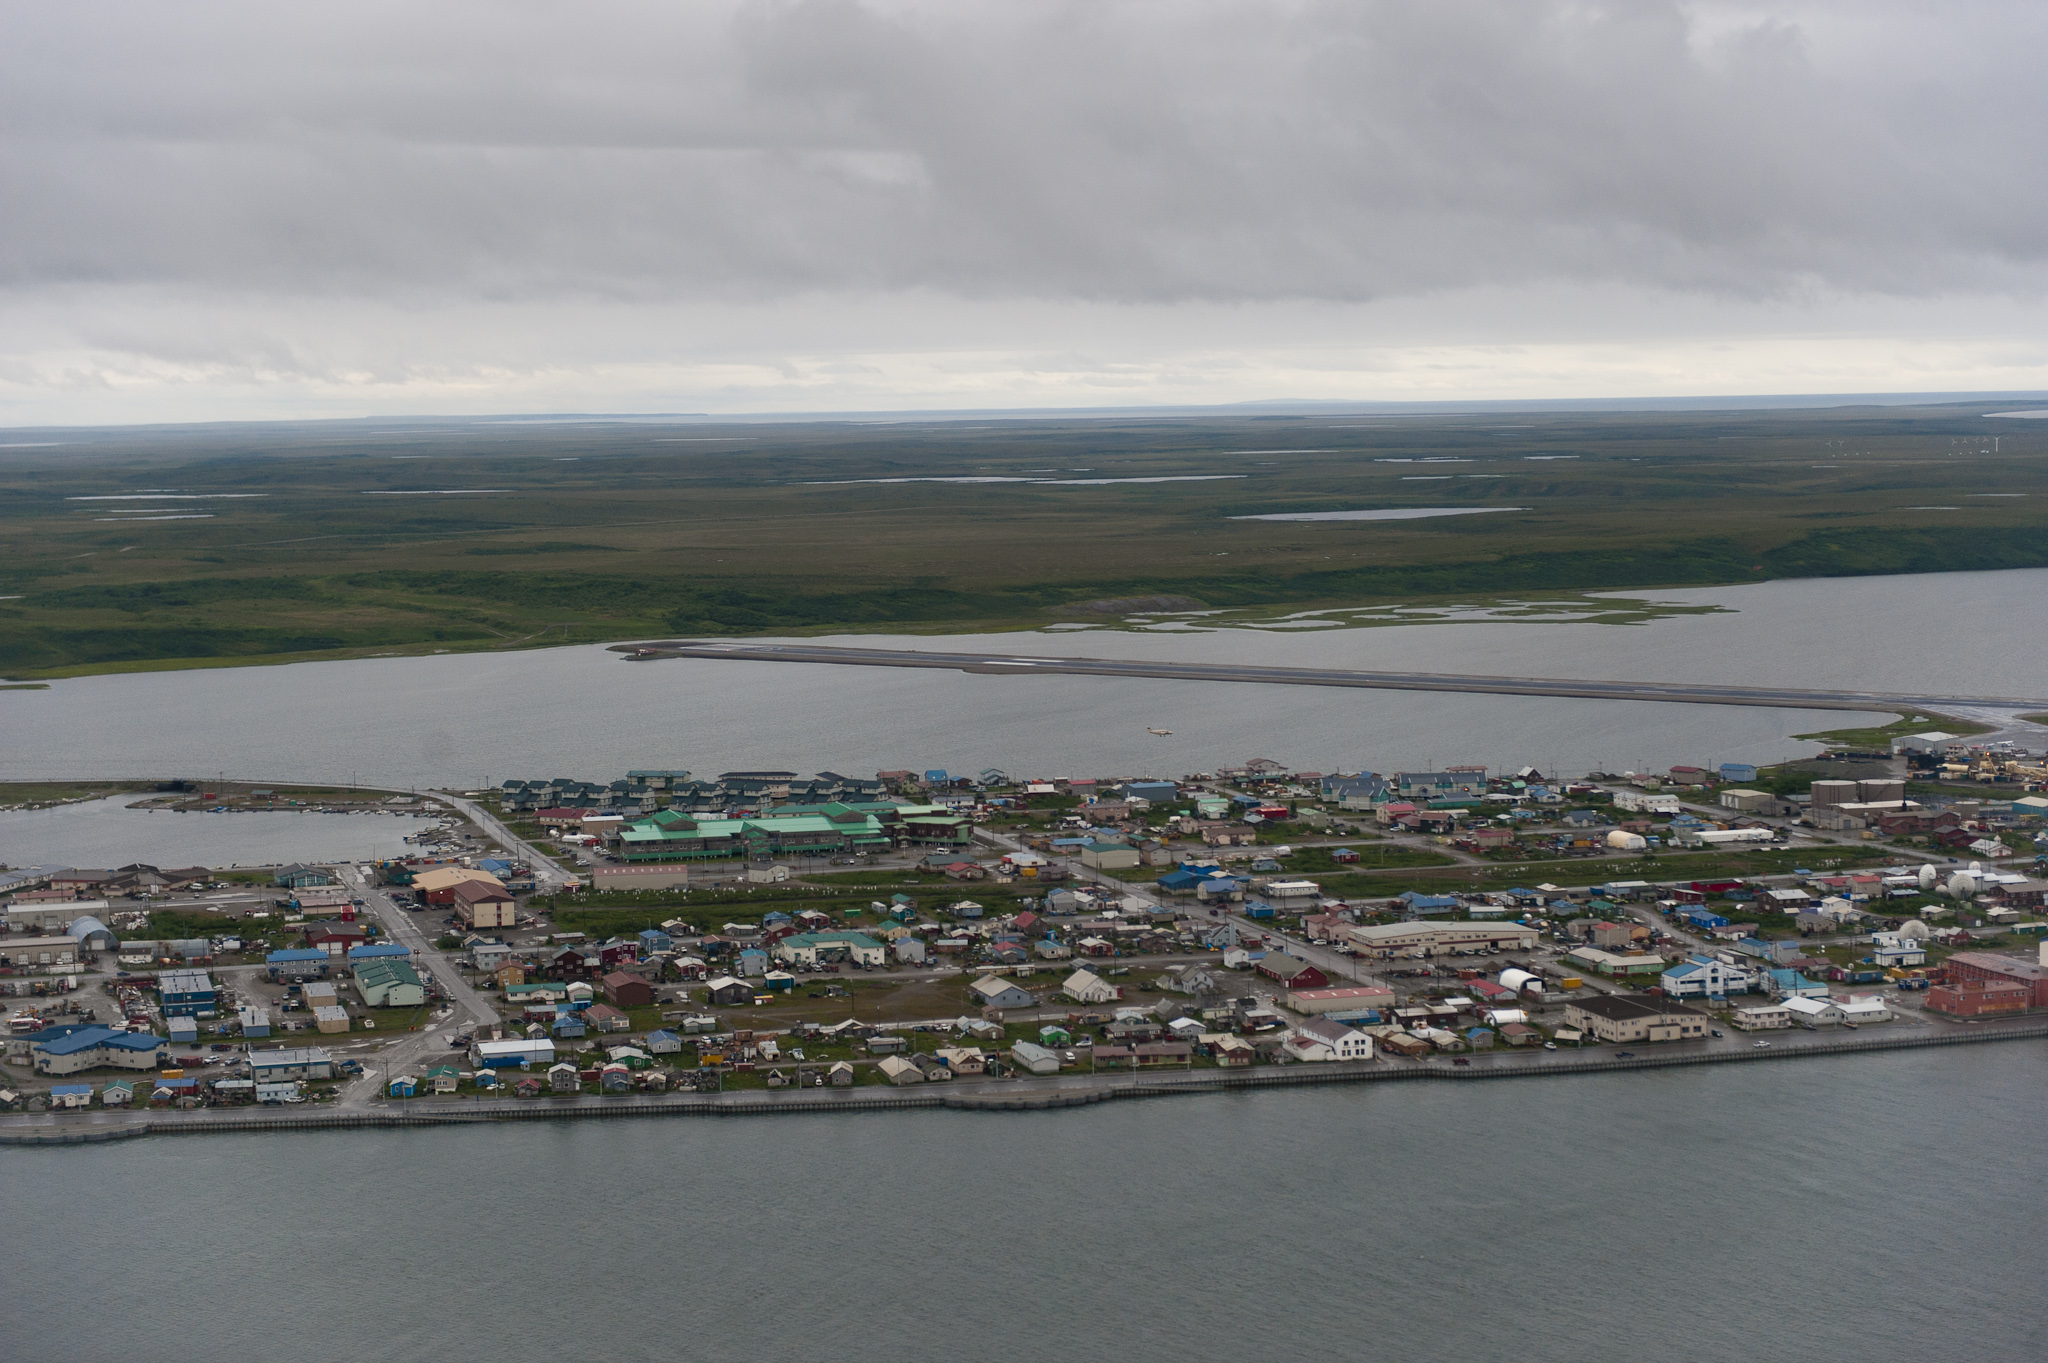 kotzebue dating The role of fish and wildlife in the economies of barrow, bethel, dillingham, kotzebue and nome technical paper no 154 robert j wolfe, james a fall, virginia fay.